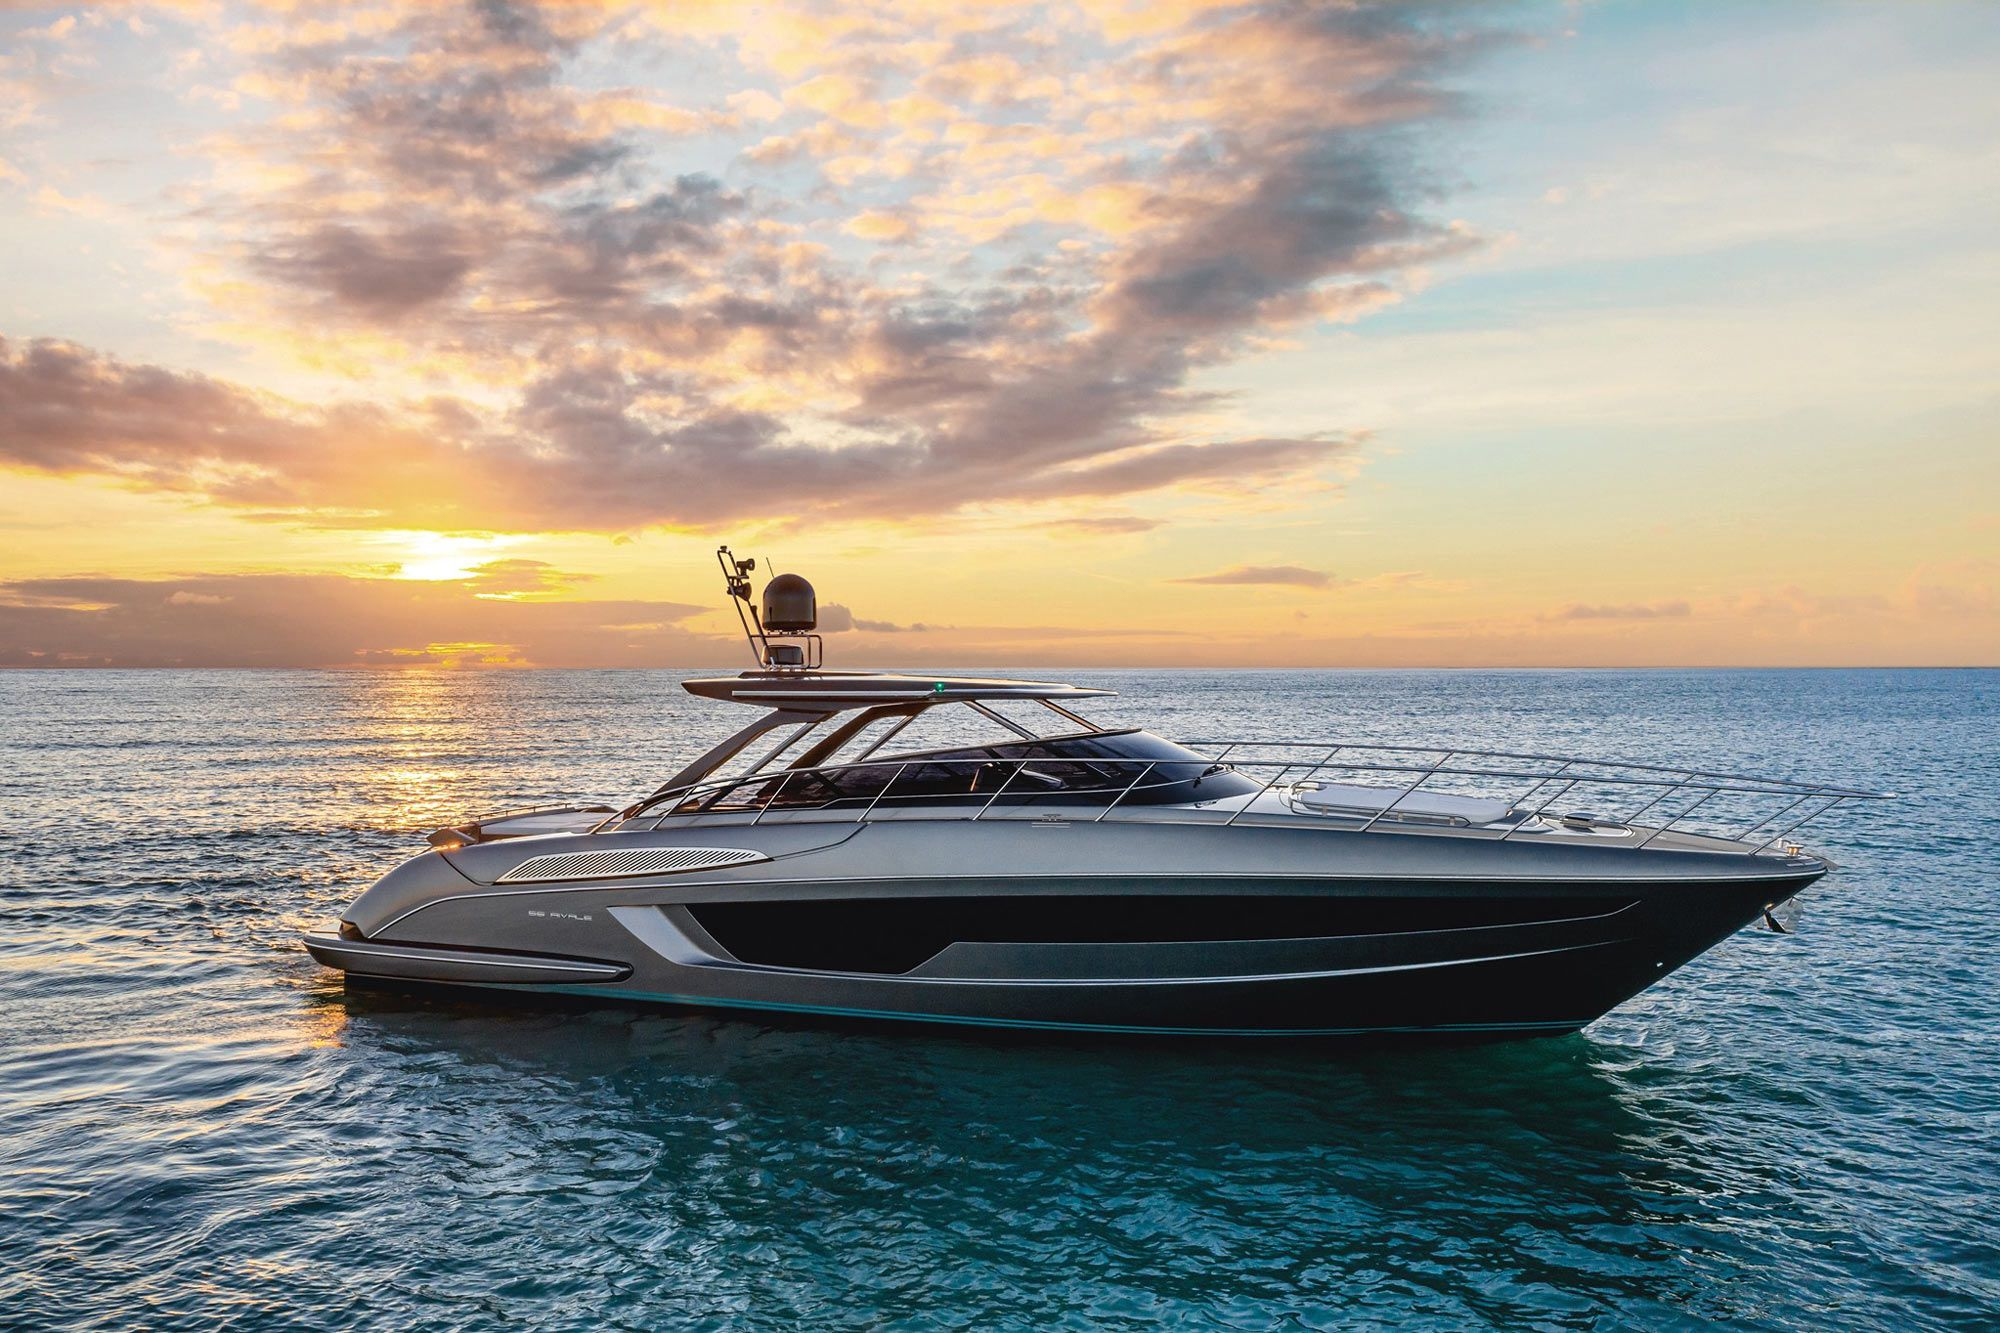 The Riva 56' Rivale Hard Top has three en suite staterooms, and with optional 1,200 hp MAN diesels it can reportedly make 38 knots.